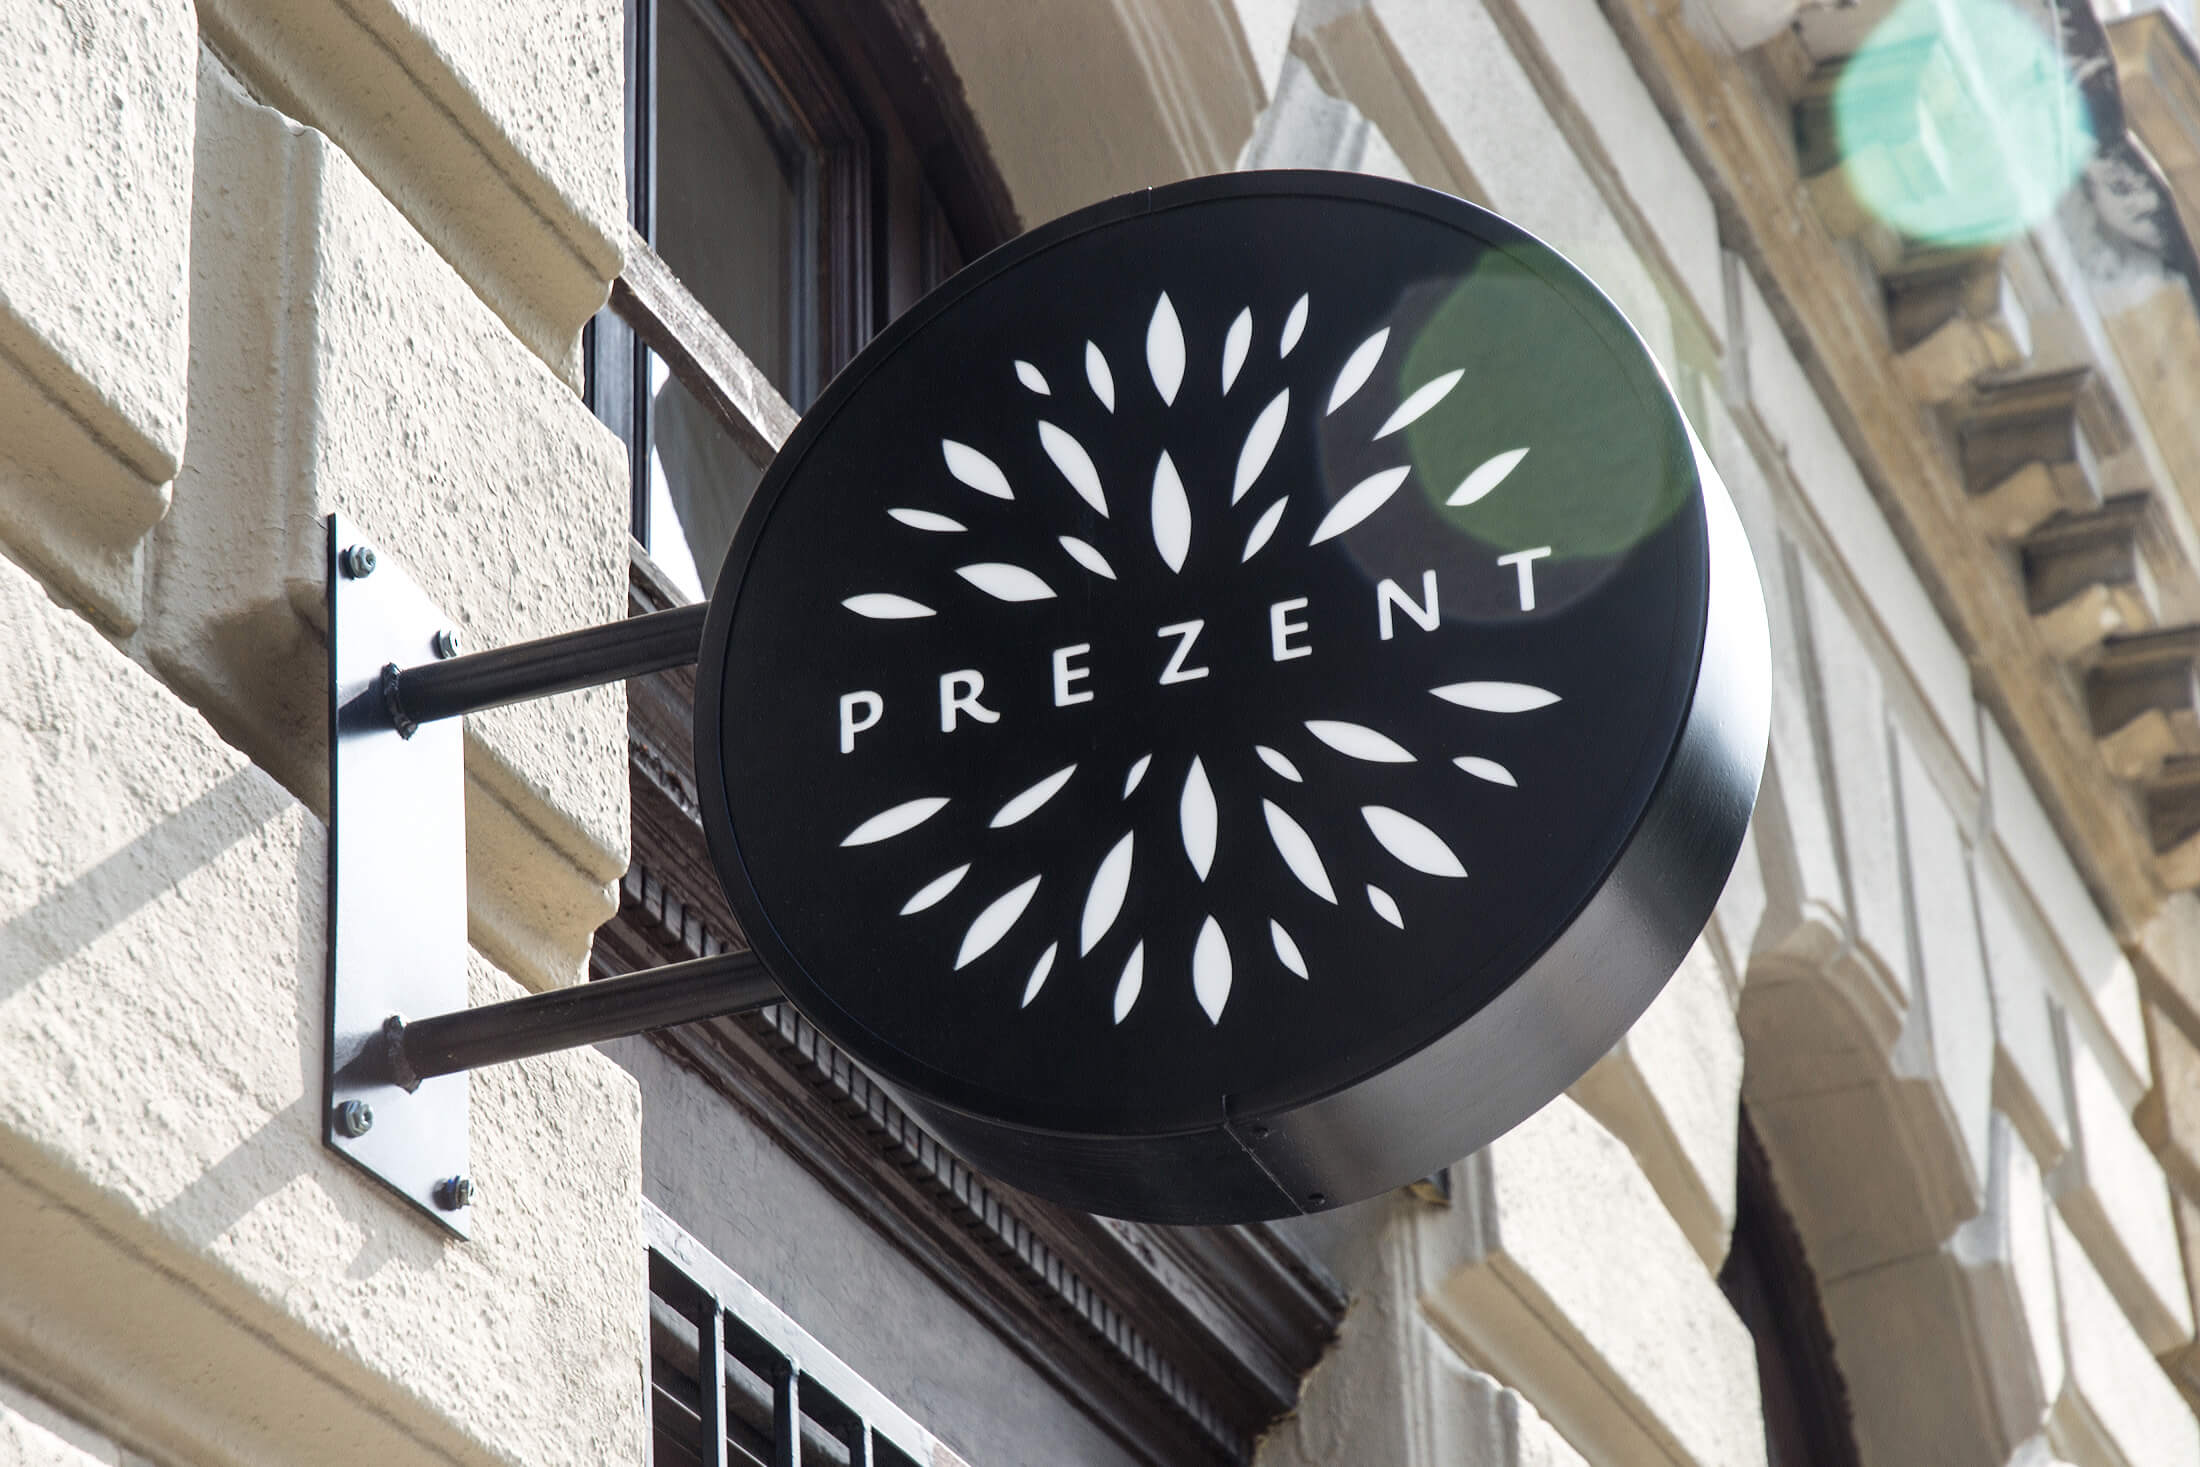 Prezent \ Gift shop sign